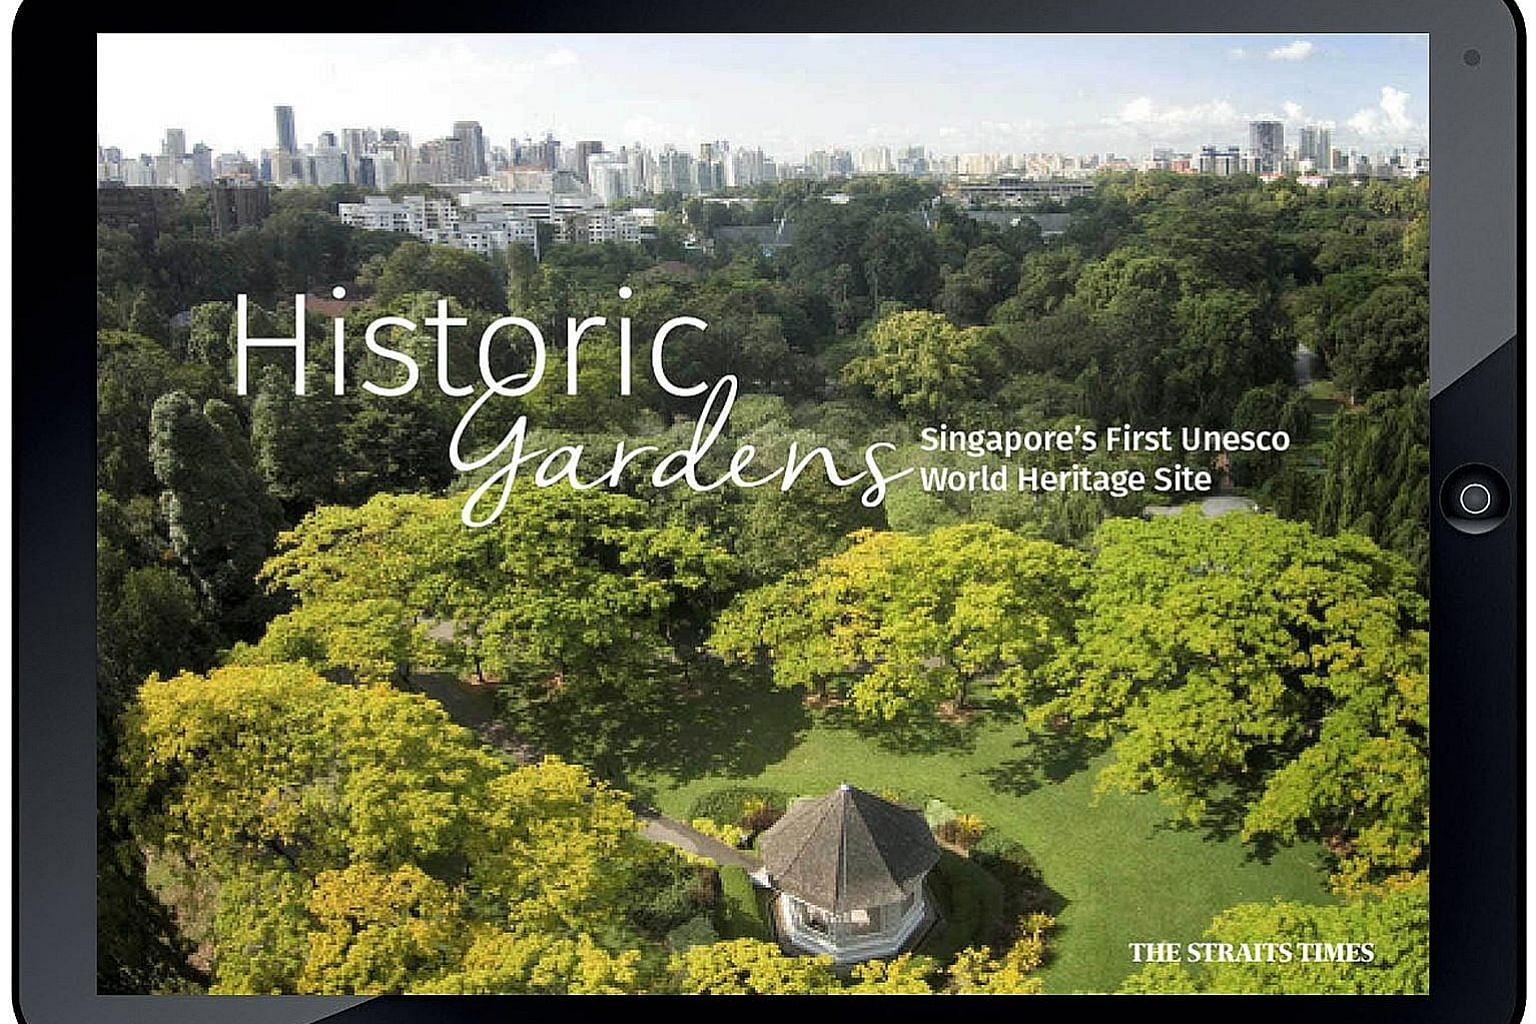 Wander through the Botanic Gardens armed with ST's latest free photo-rich e-book, which also delves into its Unesco journey.